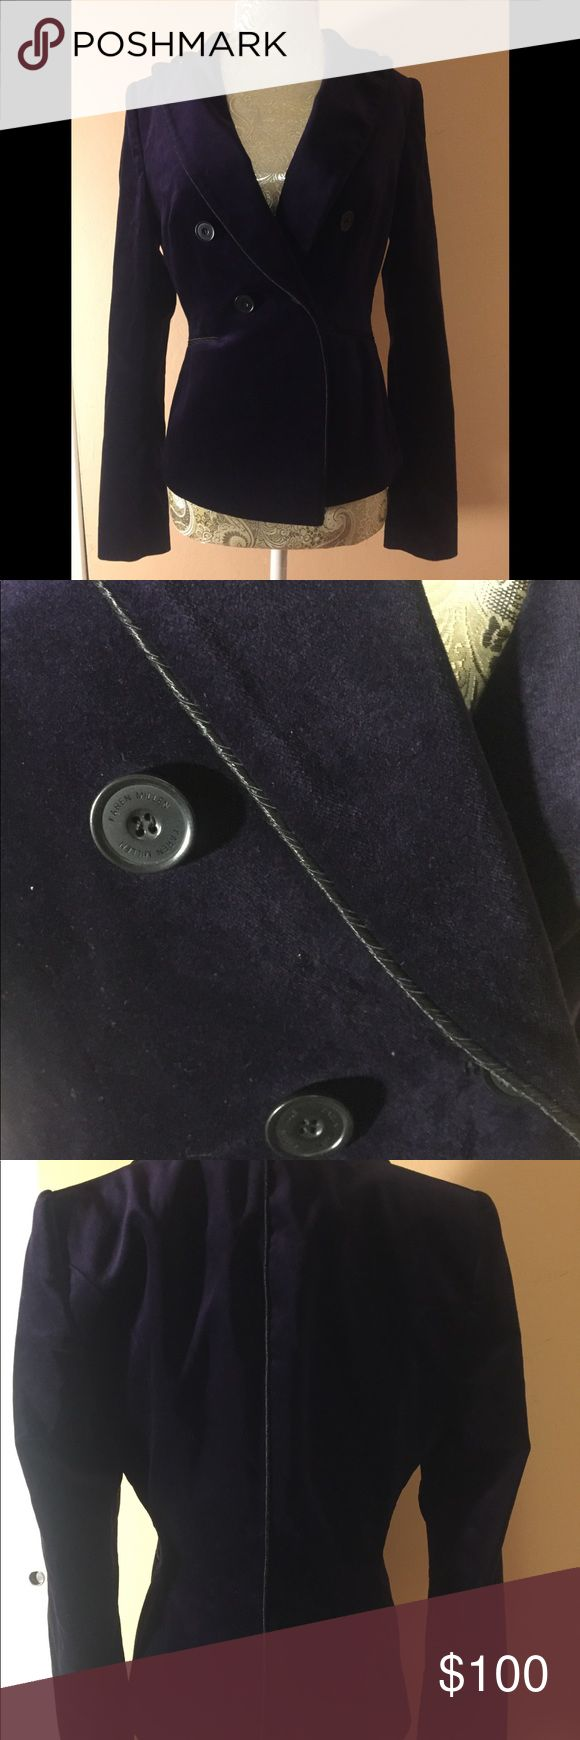 Karen Millen New Blazer Size 6 New Without Tags Karen Millen Blazer UK Size 8/US Size 6 Never worn. Dark Purple Velvet with black liner and black trim. Very Soft and tight fit and excellent condition never worn. According to tag Sample for November 2016 Collection. Handwritten Sample. Similar Blazer retails for £150 or approx $198. This is a very rare find that was gifted to me from the UK but unfortunately does not fit. Free Shipping, US buyers only. Karen Millen Jackets & Coats Blazers